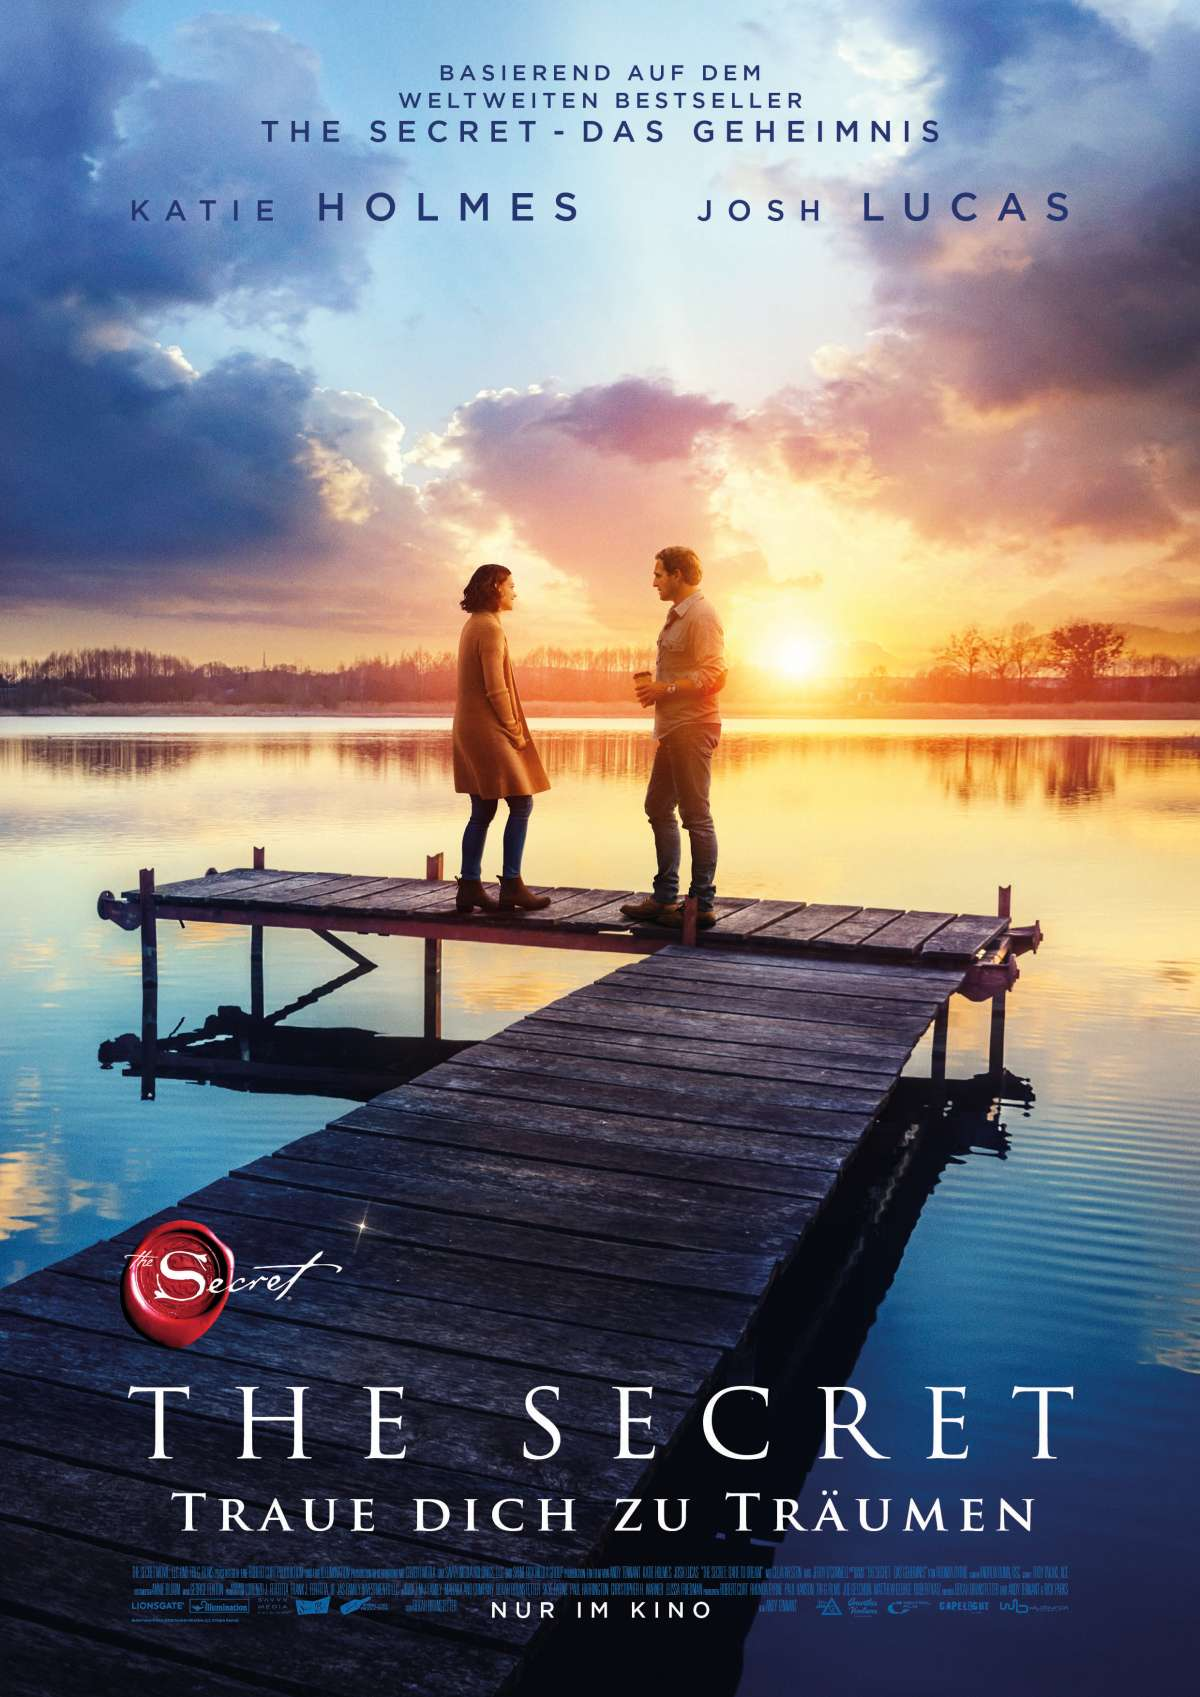 The Secret - Traue Dich zu träumen - Cineplex  - Kassel